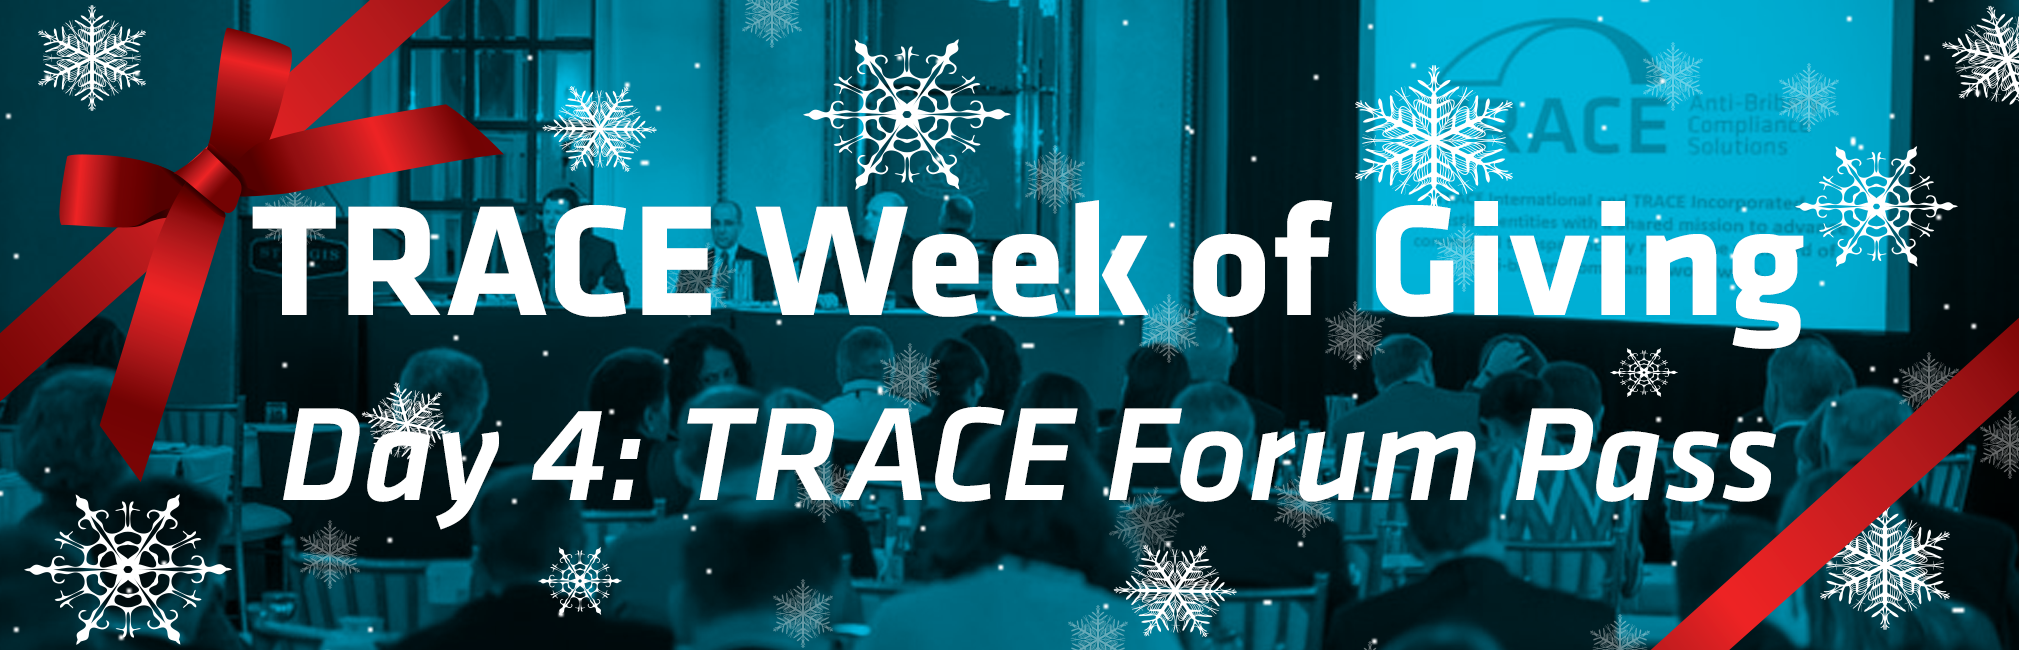 TRACE-week-of-giving-email-banner-day4